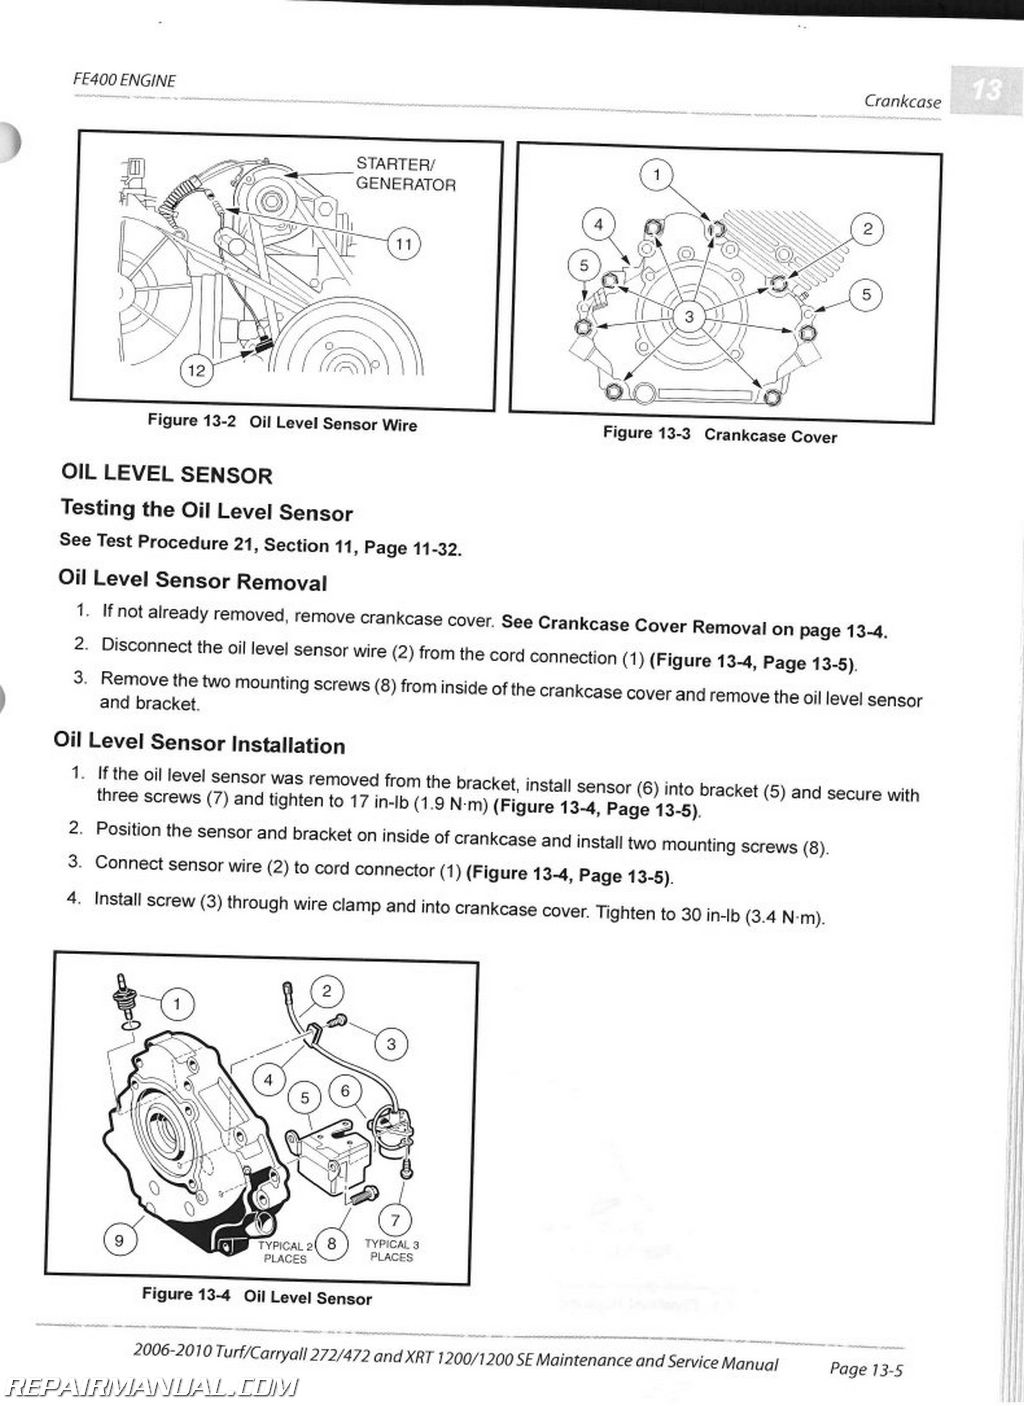 2006 Club Car Starter Wiring Diagram Worksheet And 2010 Turf Carryall 272 472 Xrt1200 Se Rh Ebay Co Uk 1996